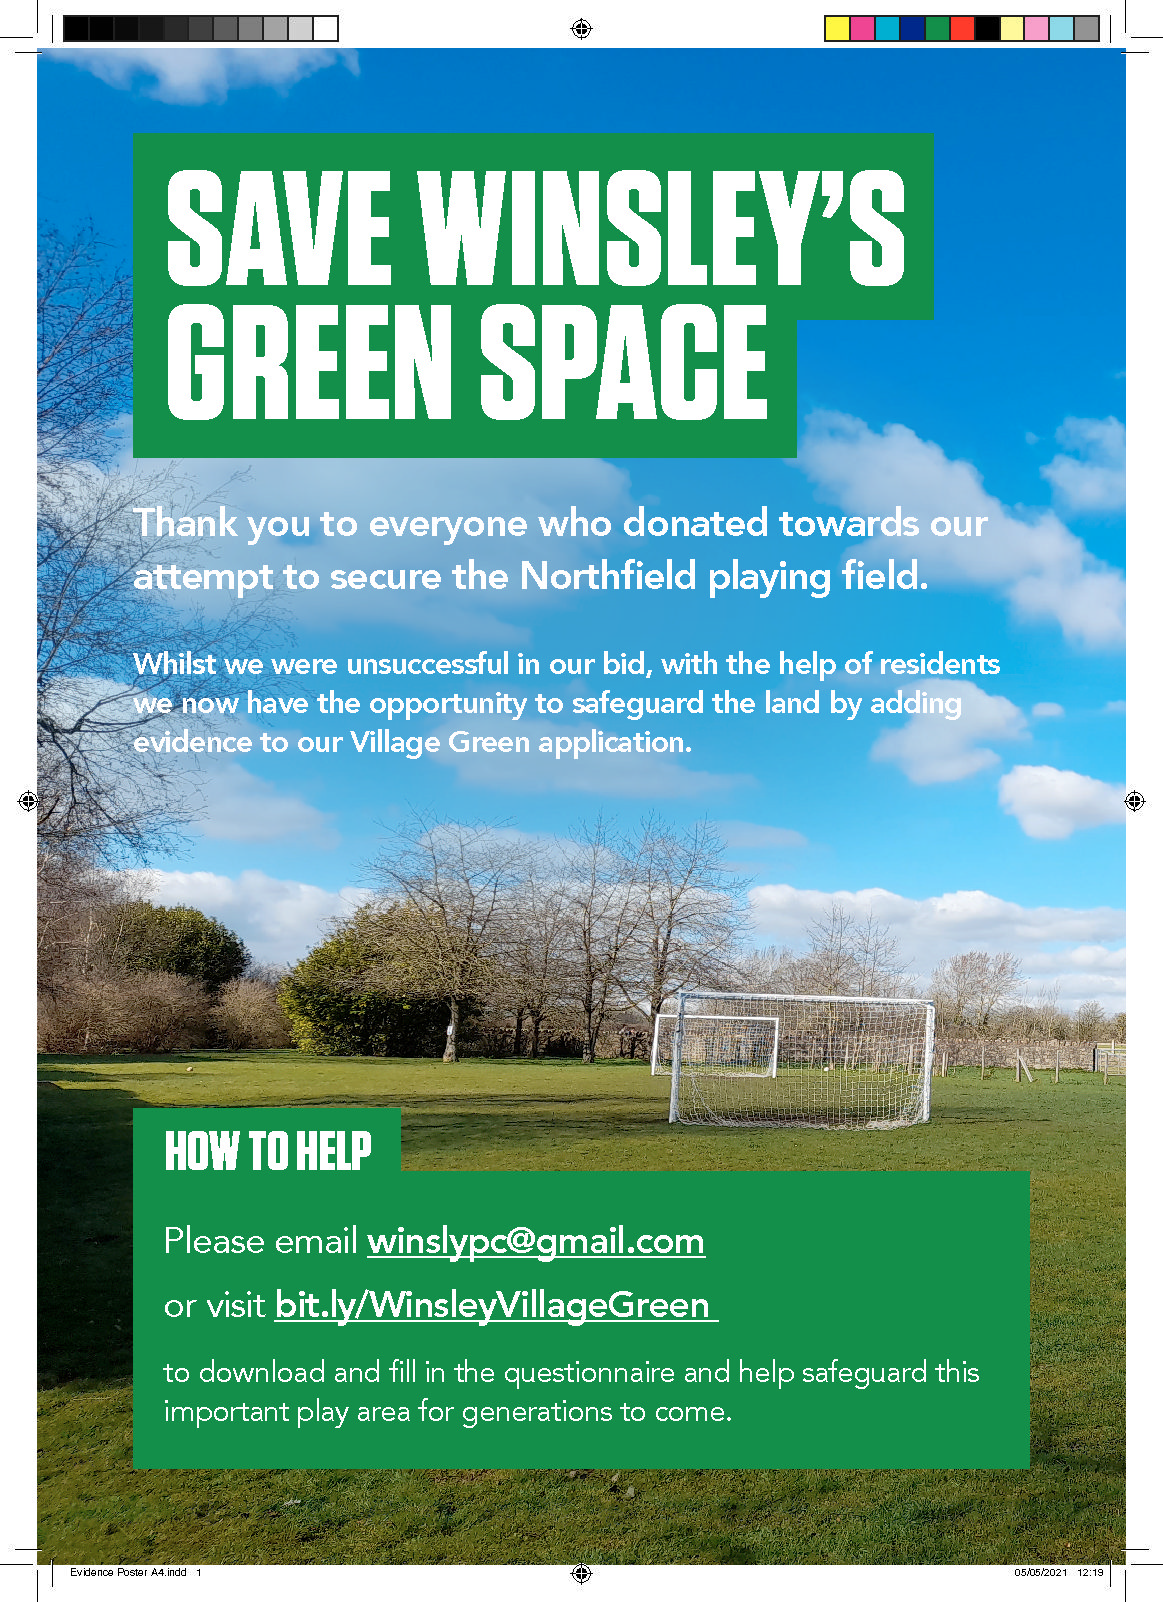 If you've ever used Northfield playing field, please complete our Evidence Questionnaire to […]